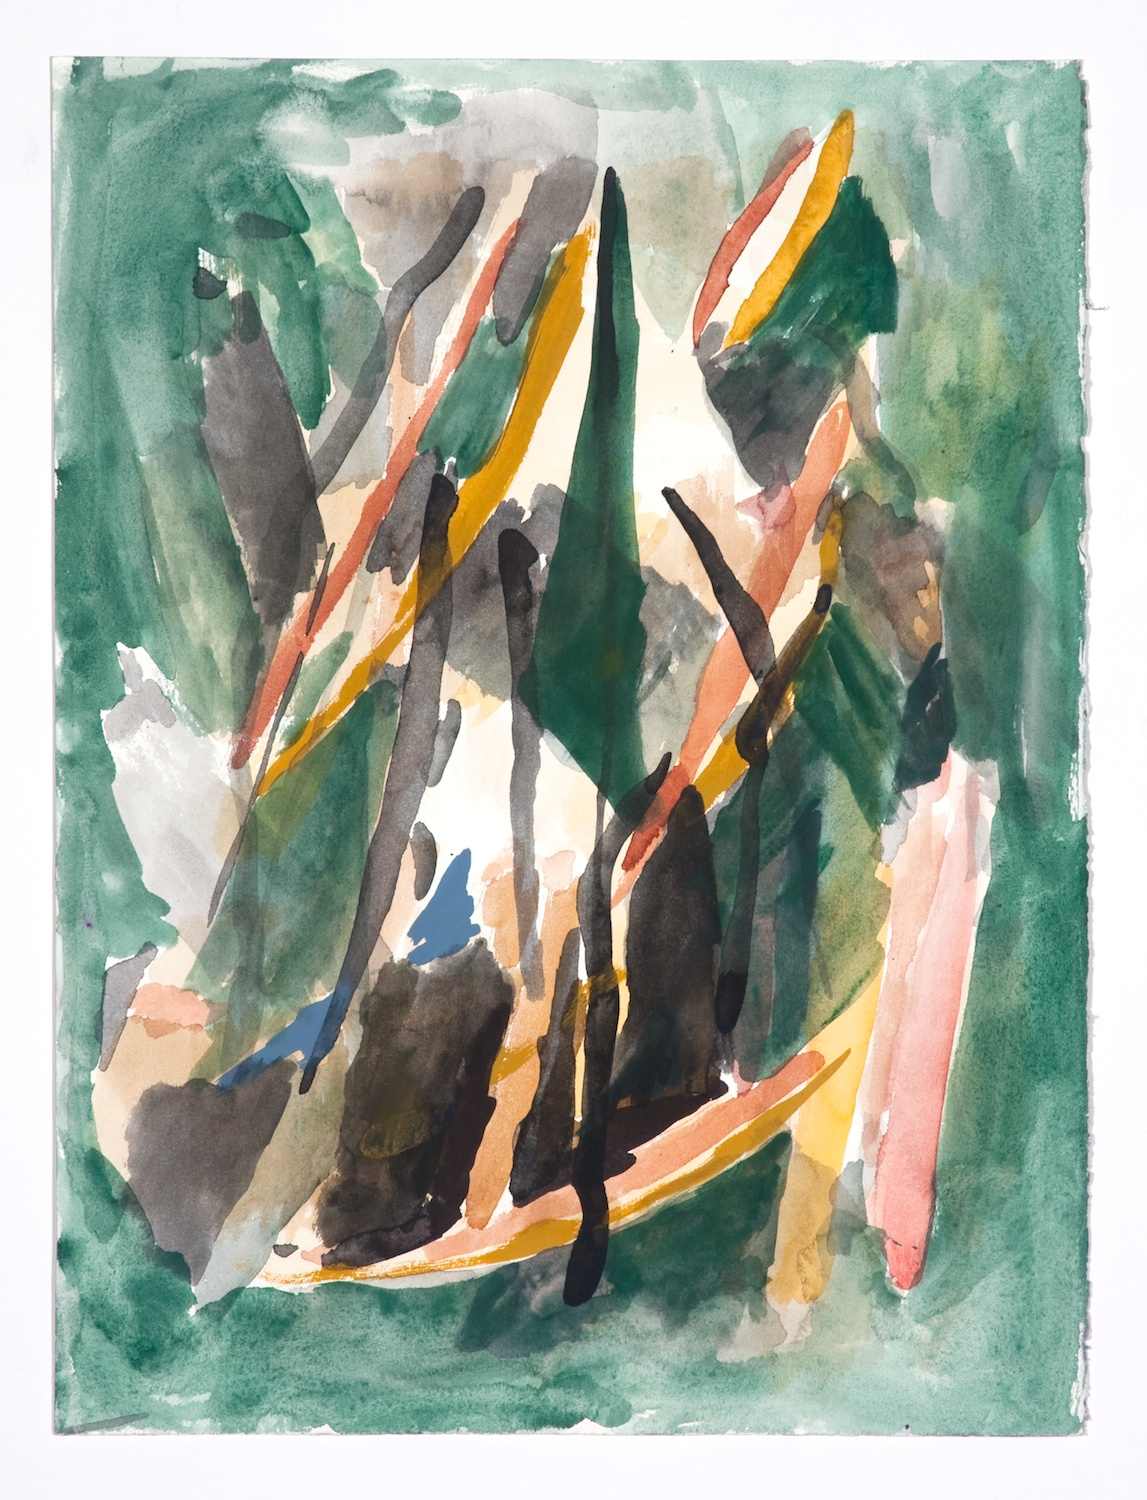 Jon Pestoni  Untitled  2009 Gouache on paper 18 ¼h x 14 ½w in JP067